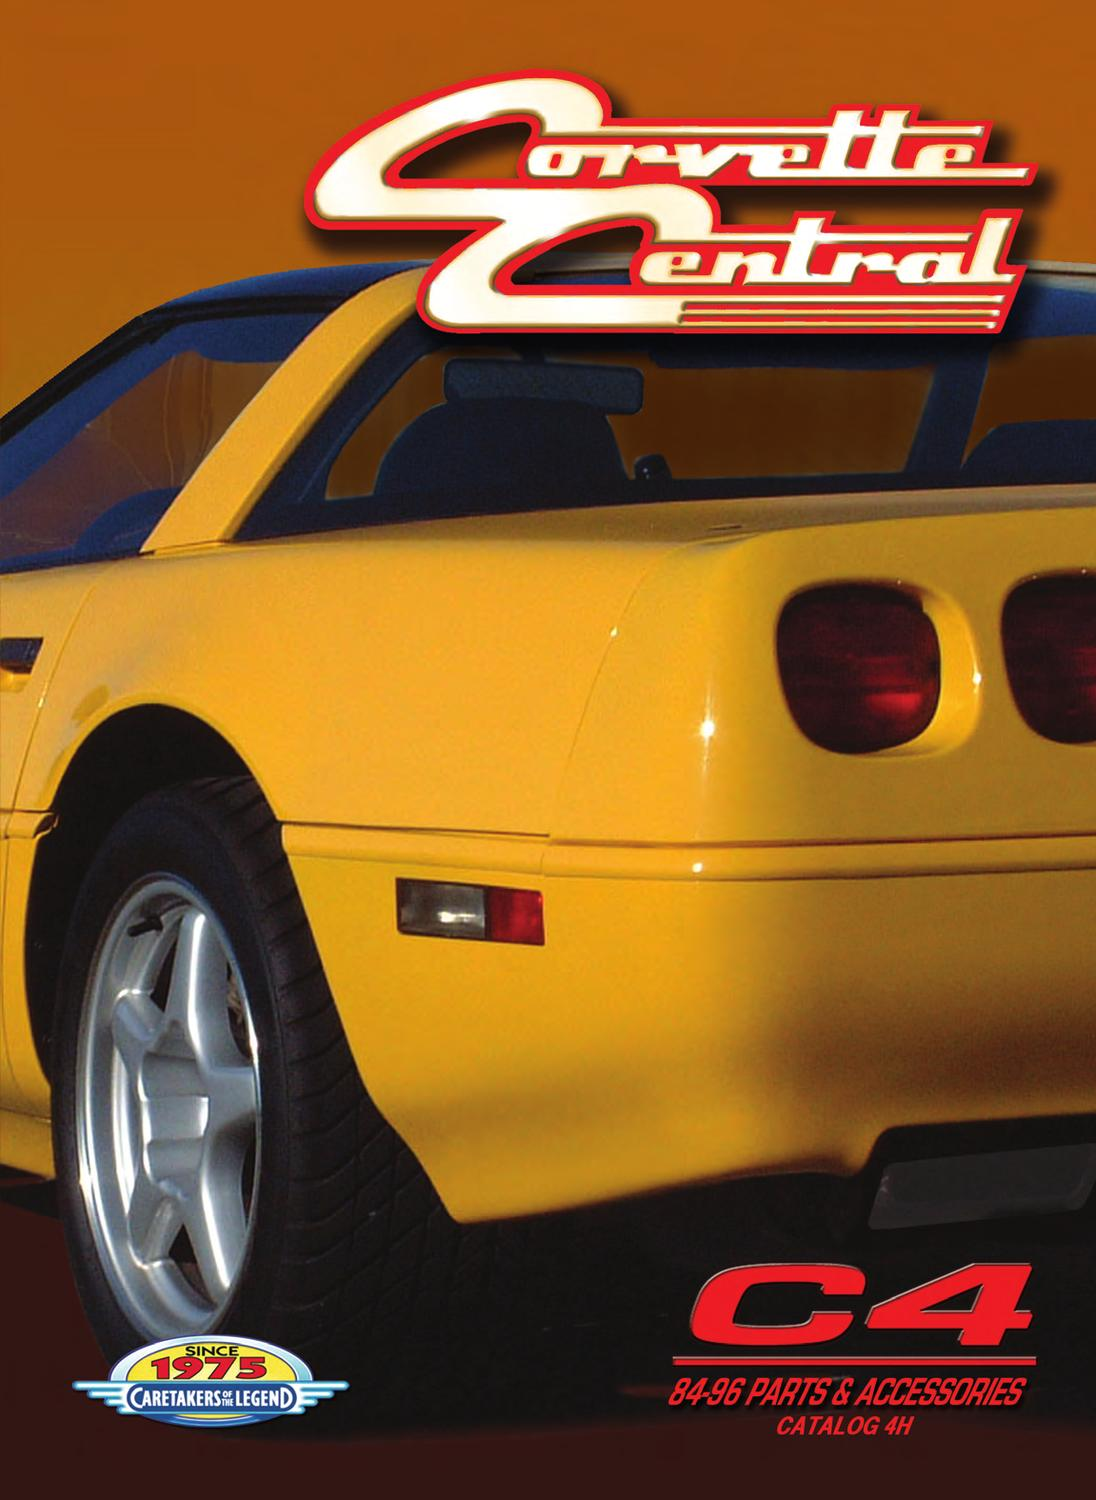 Corvette Central C4 84 96 Corvette Parts Catalog By Corvette